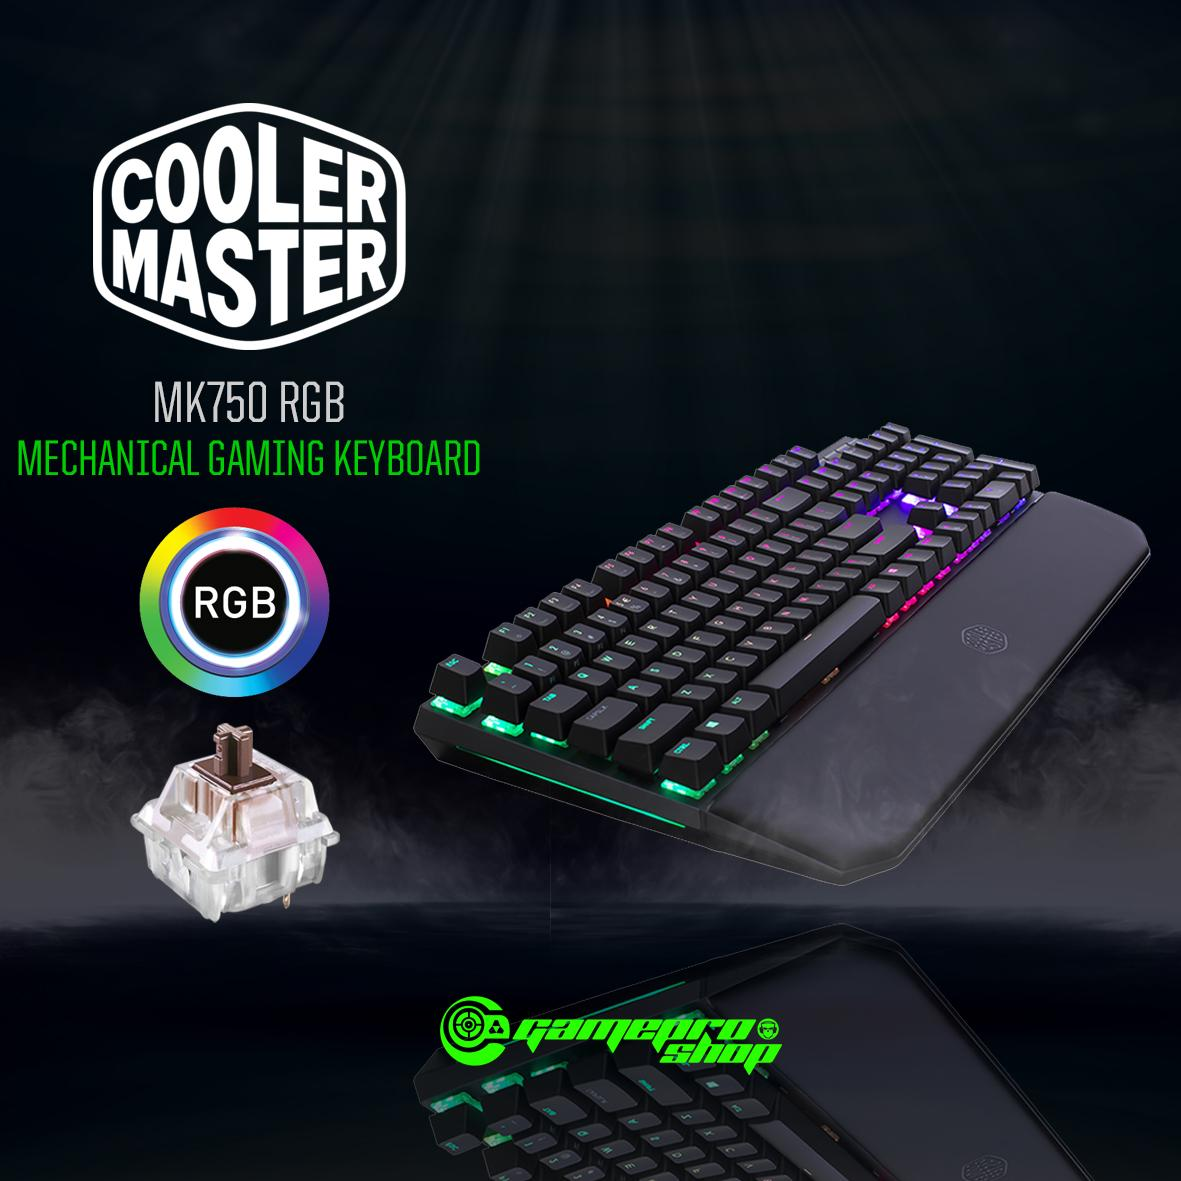 COOLER MASTER MASTERKEYS MK750 RGB ( CHERRY RED / CHERRY BROWN / CHERRY BLUE ) WITH MAGNETIC WRISTREST MECHANICAL GAMING KEYBOARD *11.11 PROMO* Singapore